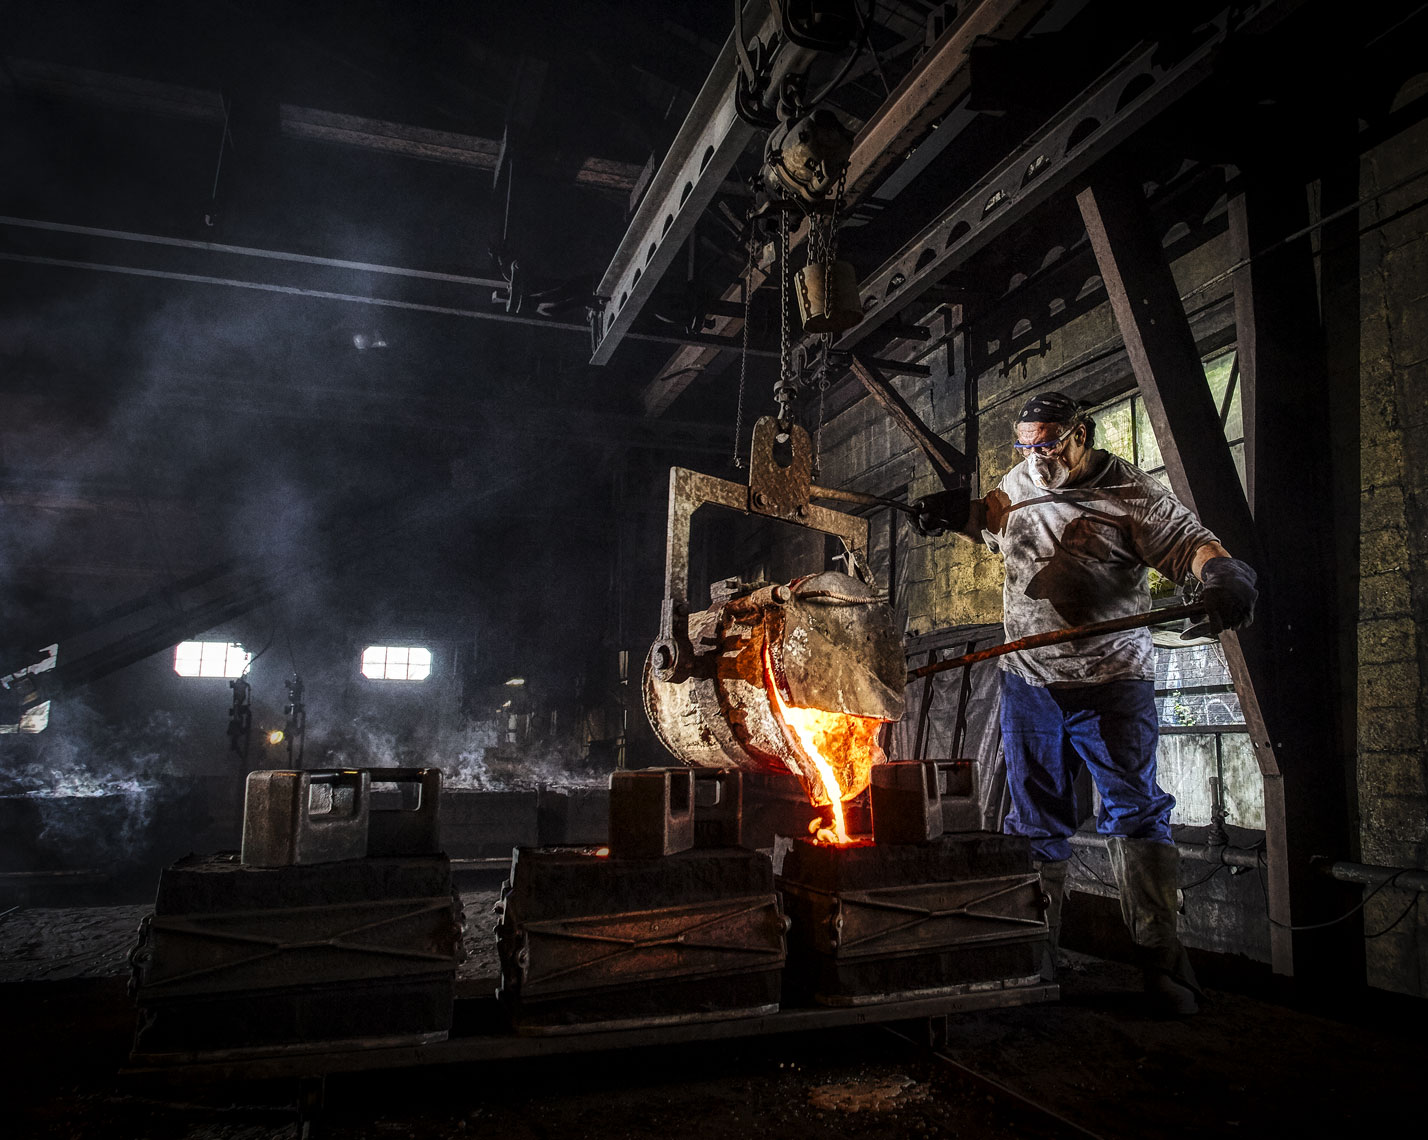 Foundry/liquid metal/worker pouring mold/industrial location photography